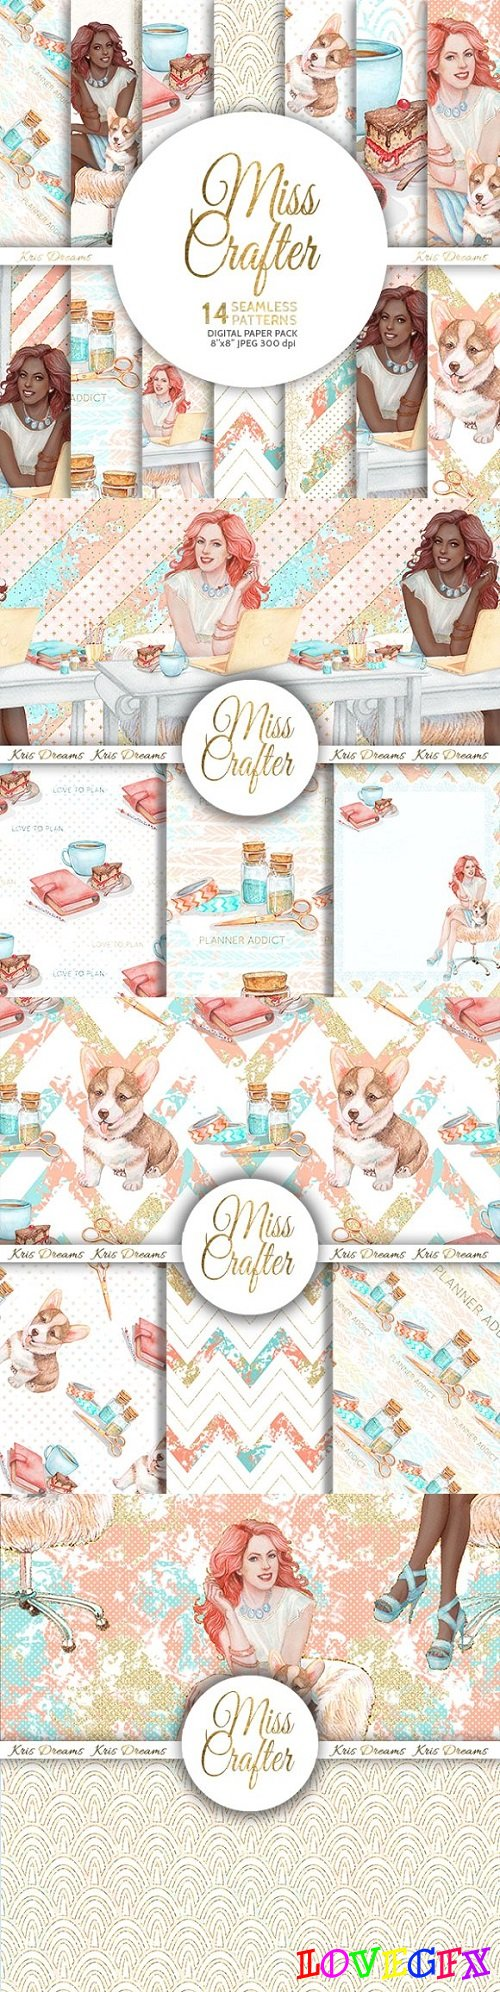 Miss Crafter Digital Paper 1490306